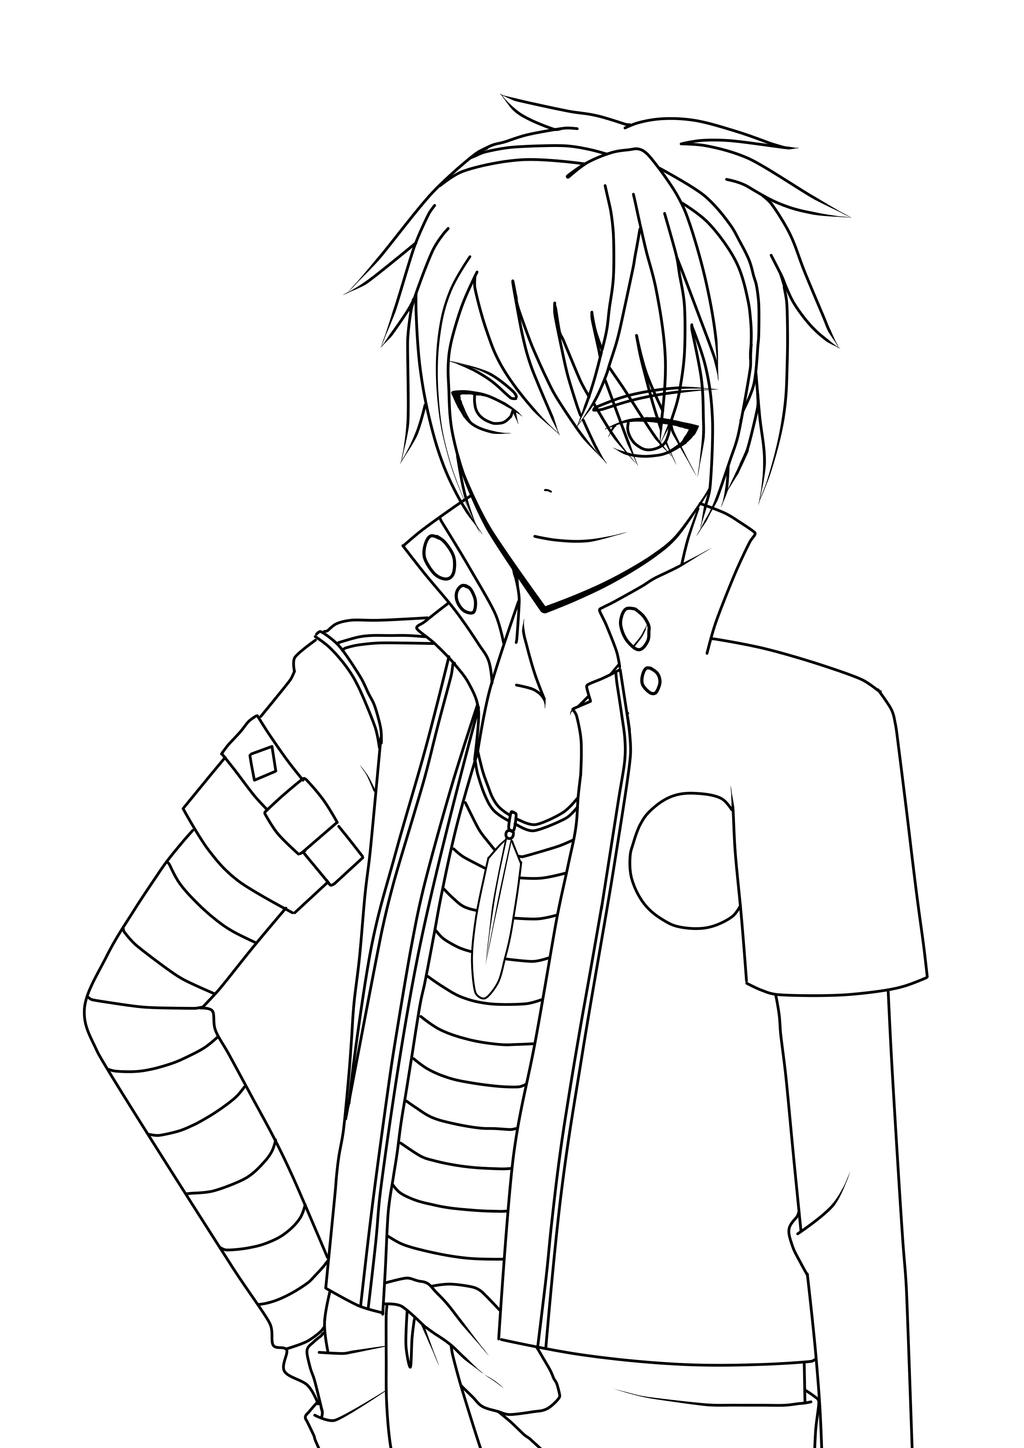 Line Art Manga : Toma amnesia anime line art by allouchsukeshi on deviantart